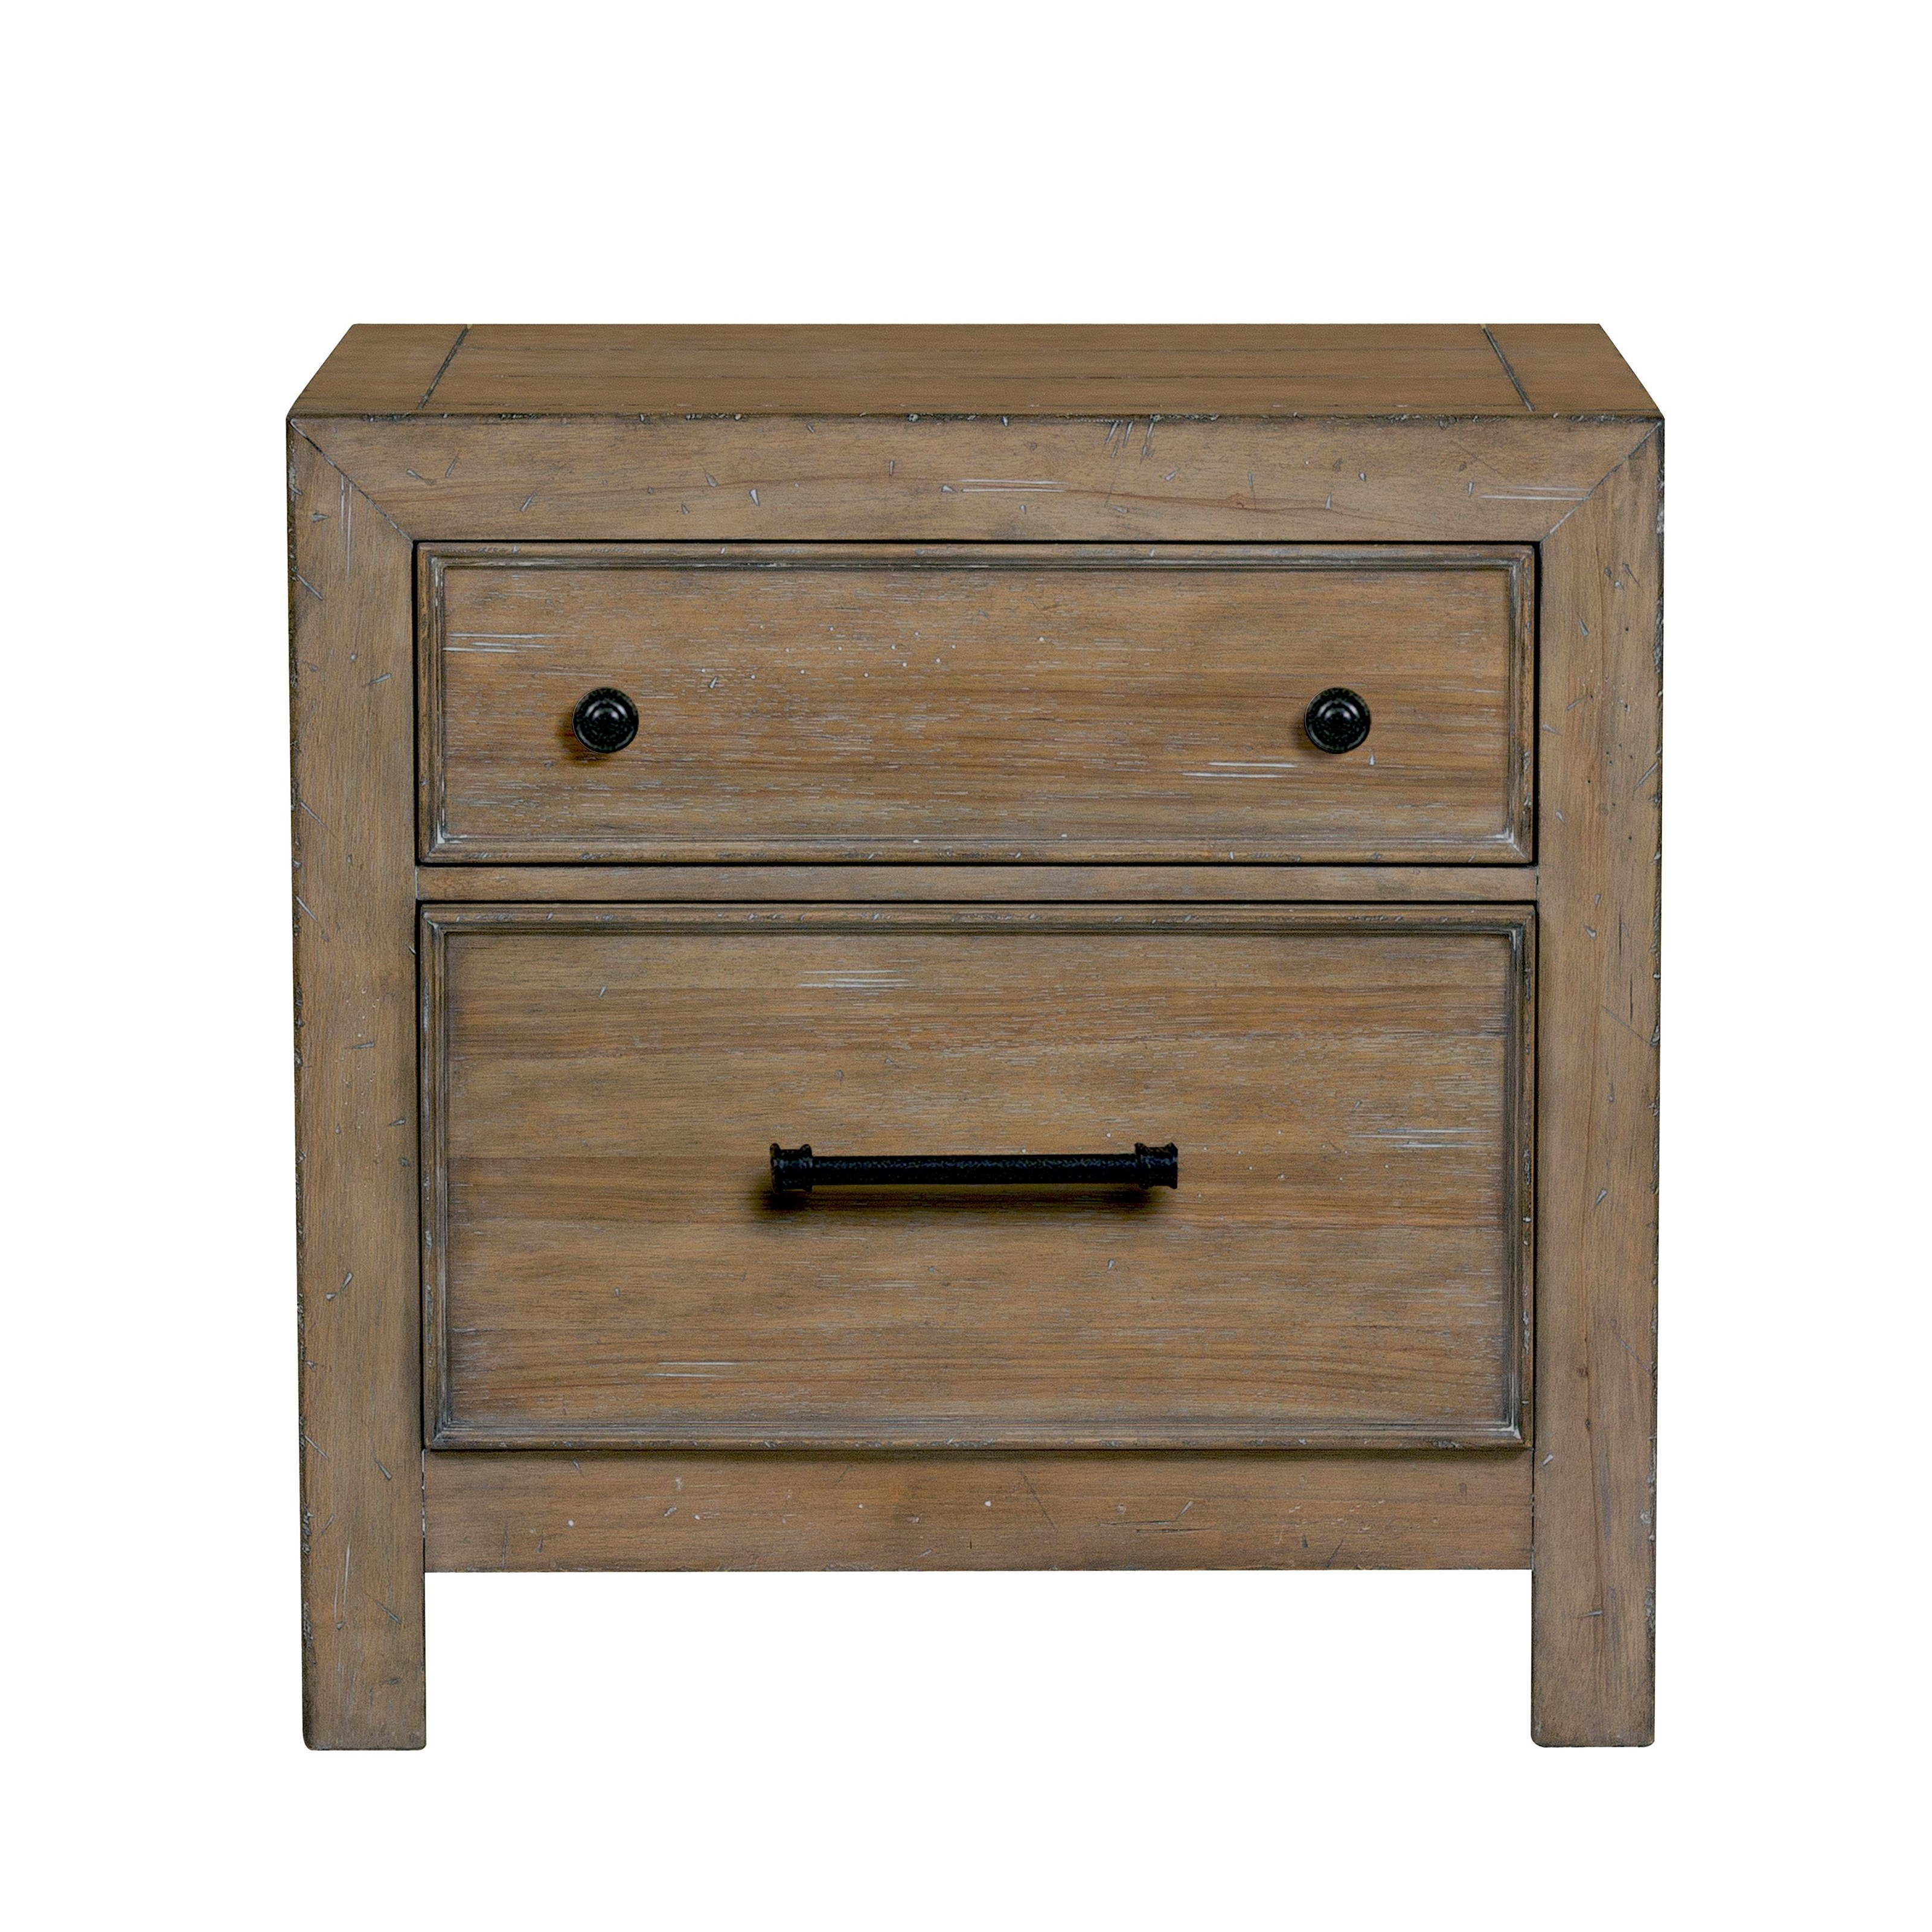 Morris Home Furnishings Oregon District Oregon District Nightstand - Item Number: 114108394